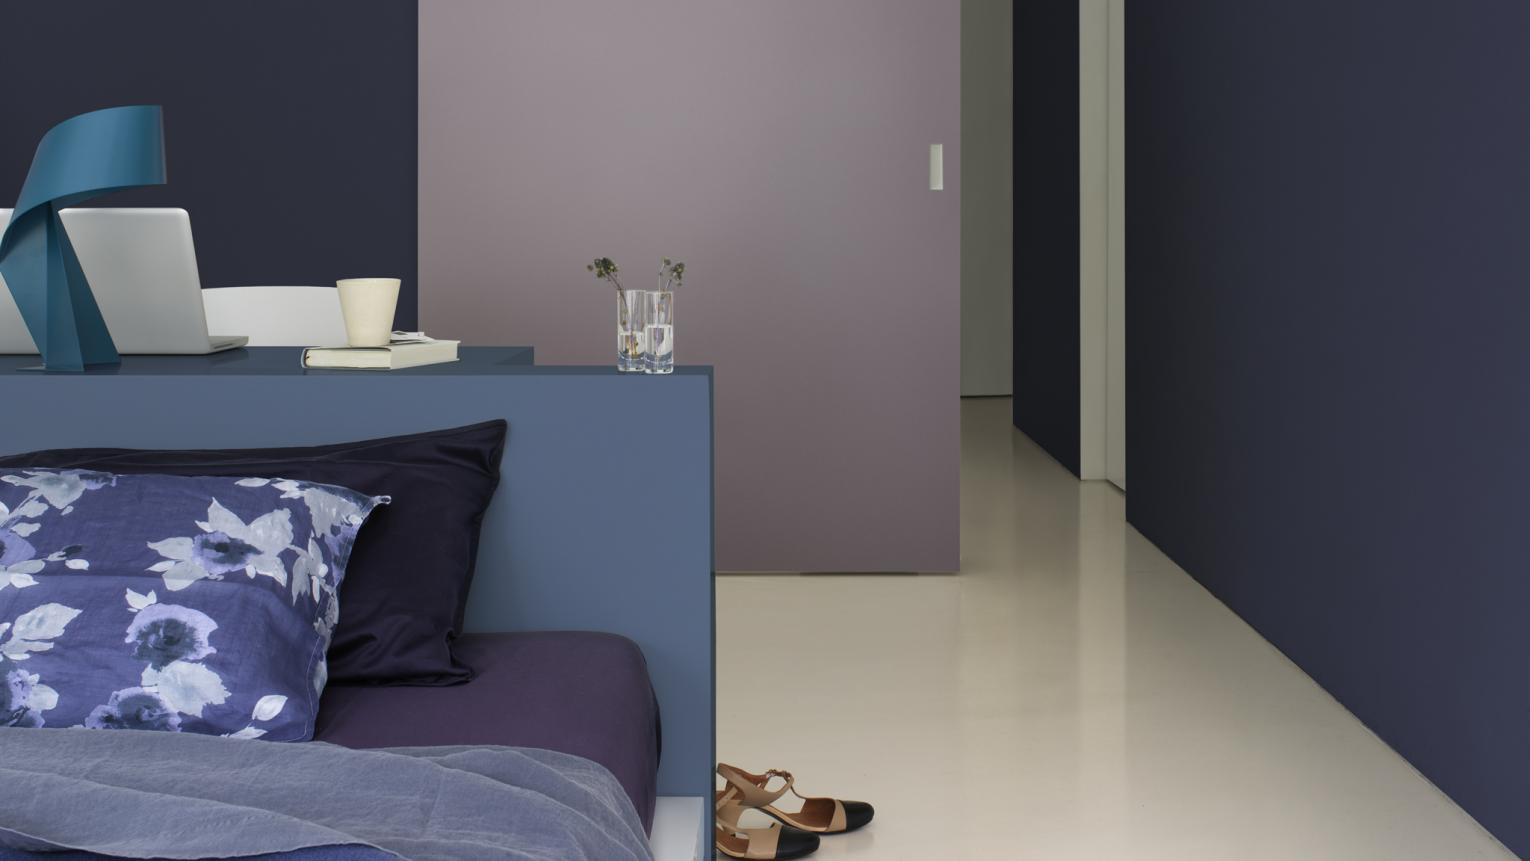 Deep purples and blues create a sense of passion and energy.